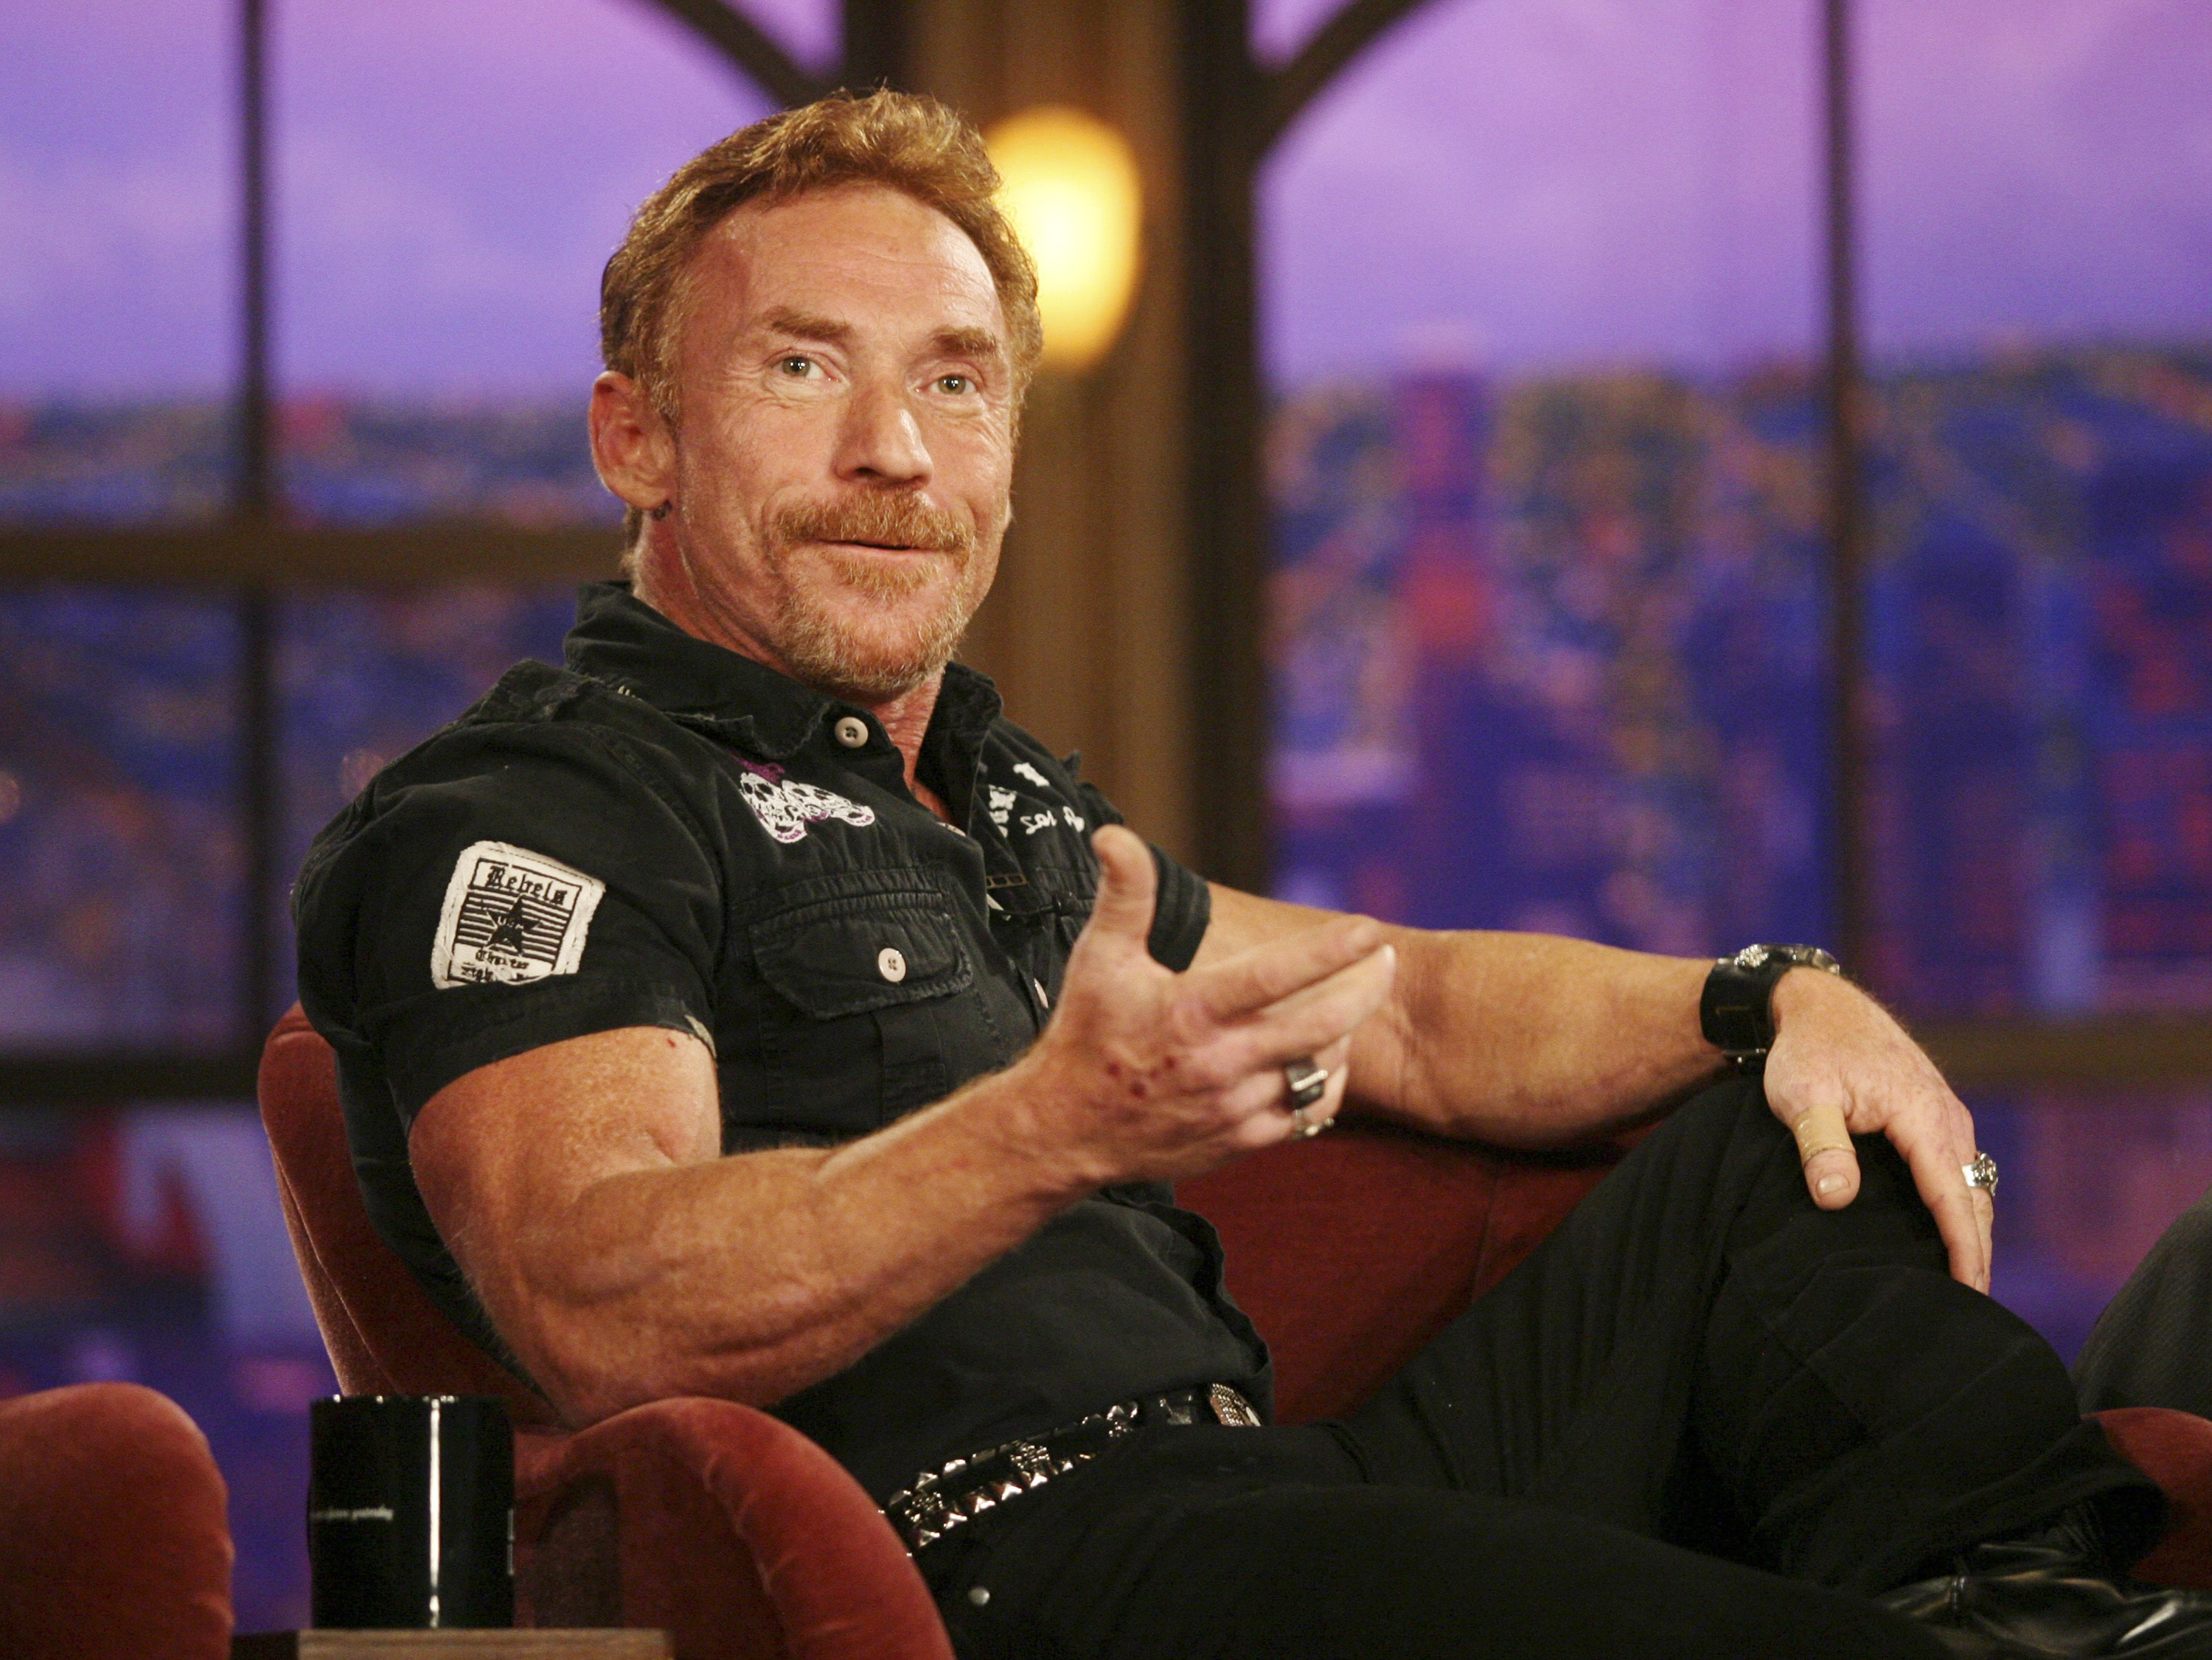 Danny Bonaduce Wallpapers